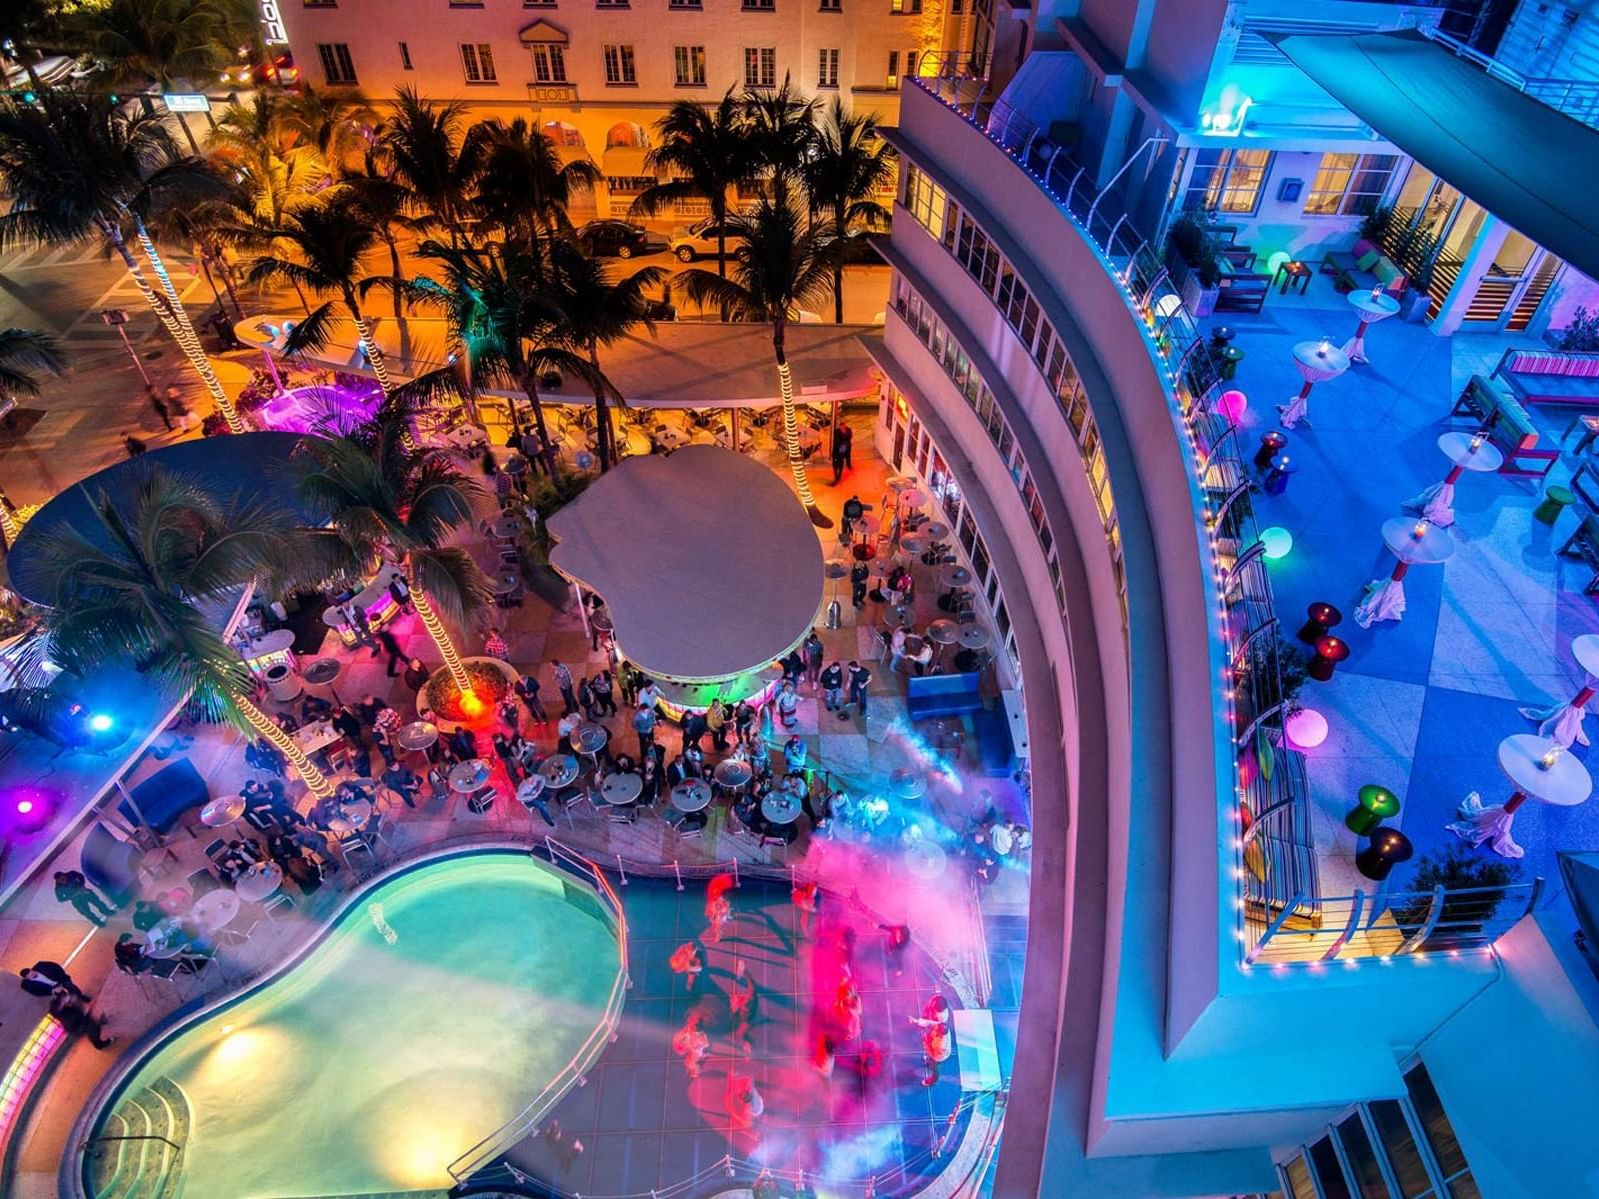 A view of night pool party in  POOL+PATIO at Essex House by Clevelander